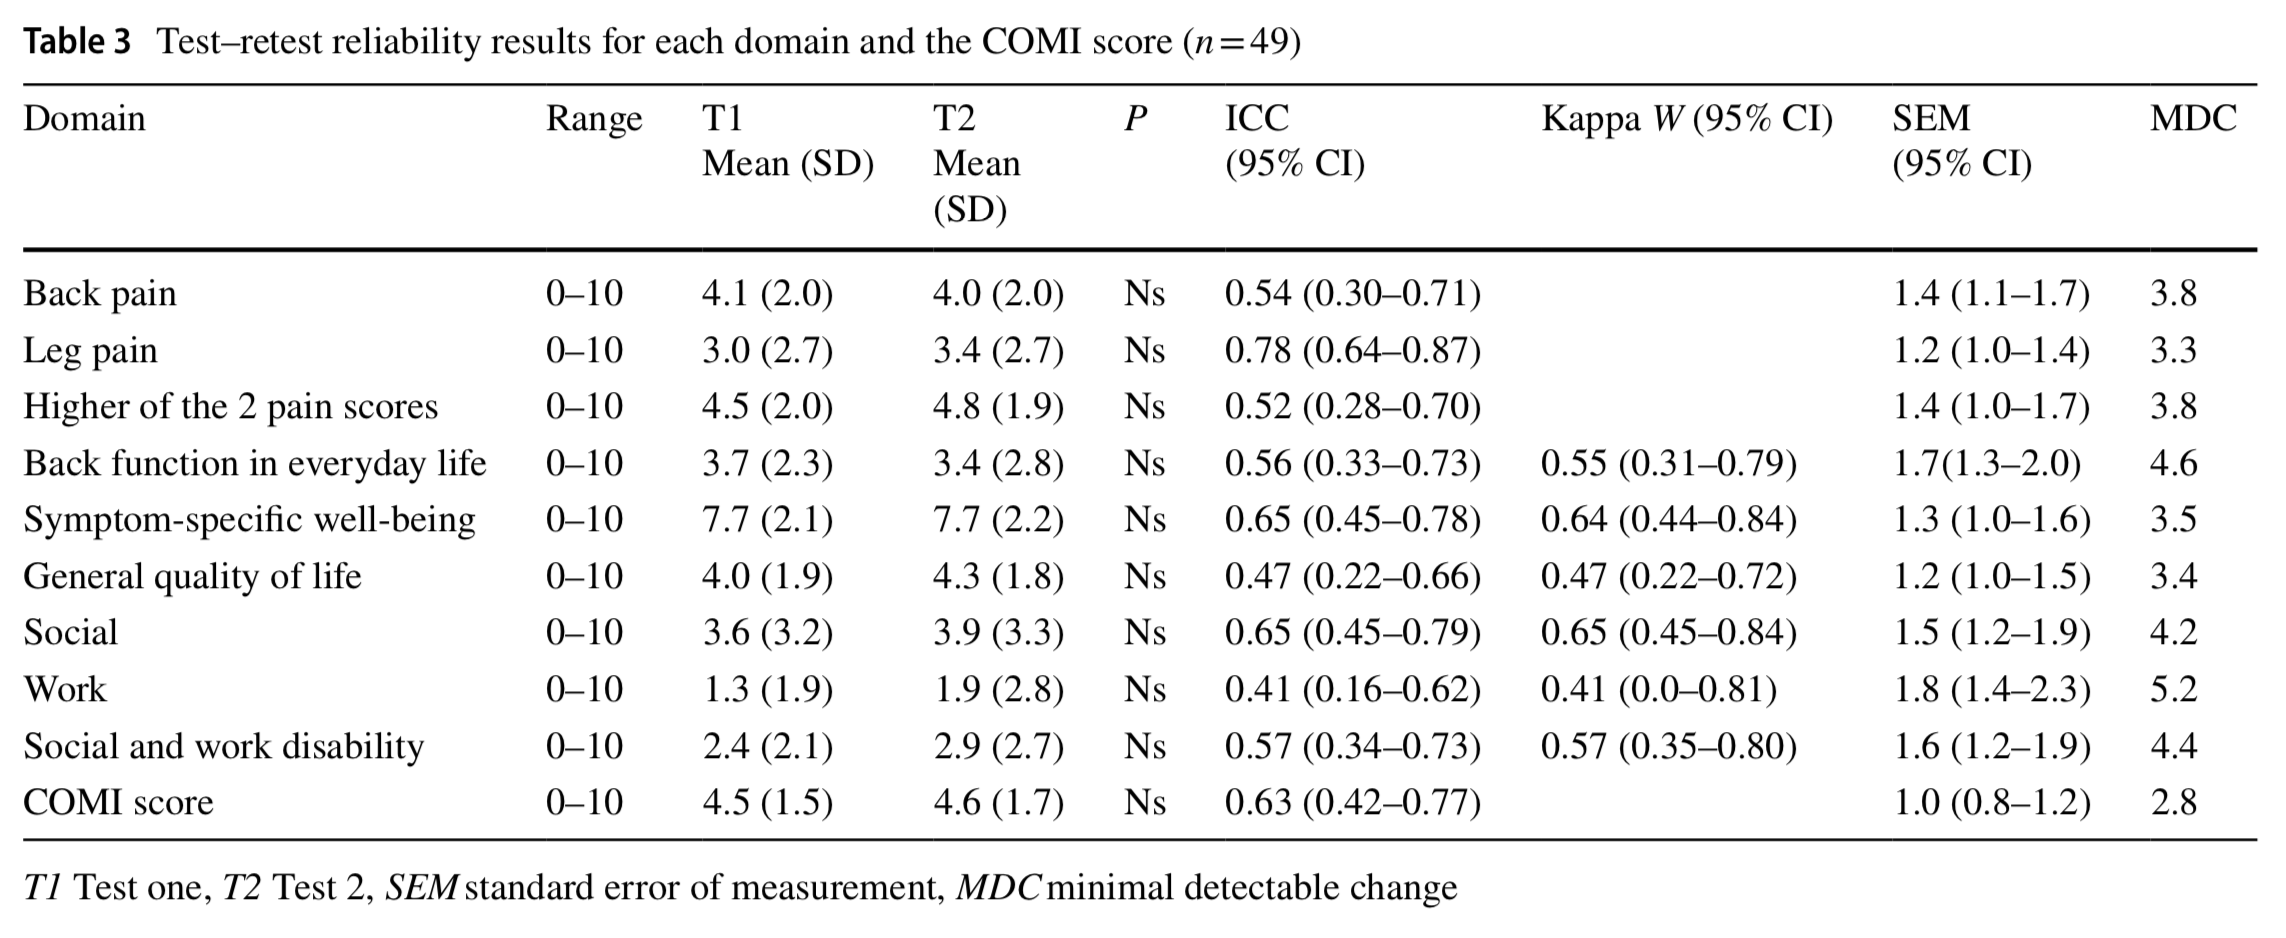 Cross-cultural adaption and validation of the Swedish version of the Core Outcome Measures Index for low-back pain